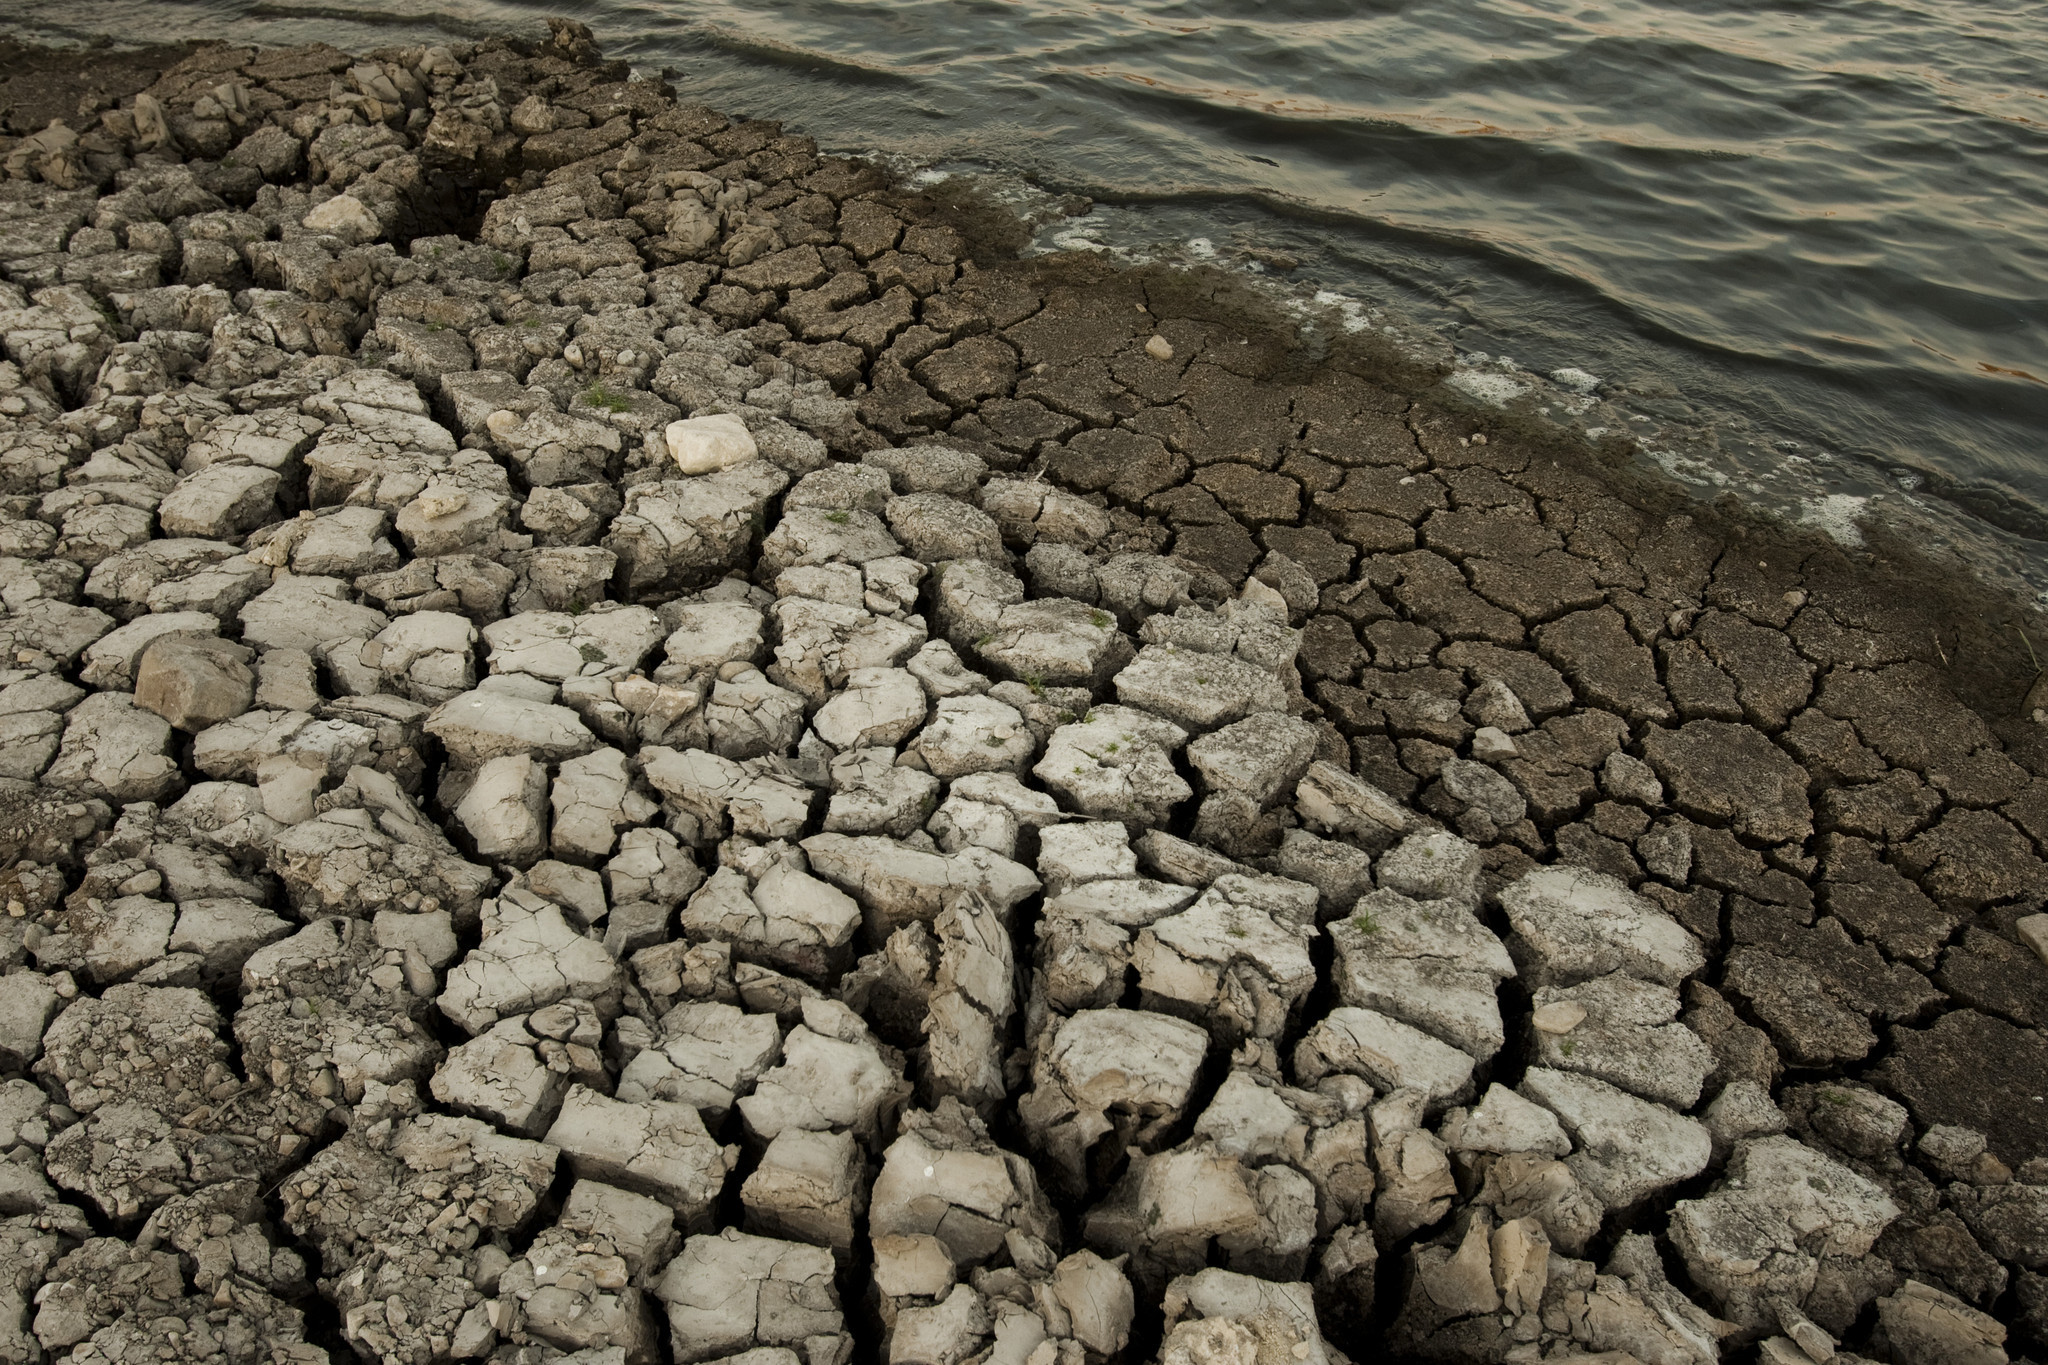 California drought and climate warming: Studies find no clear link